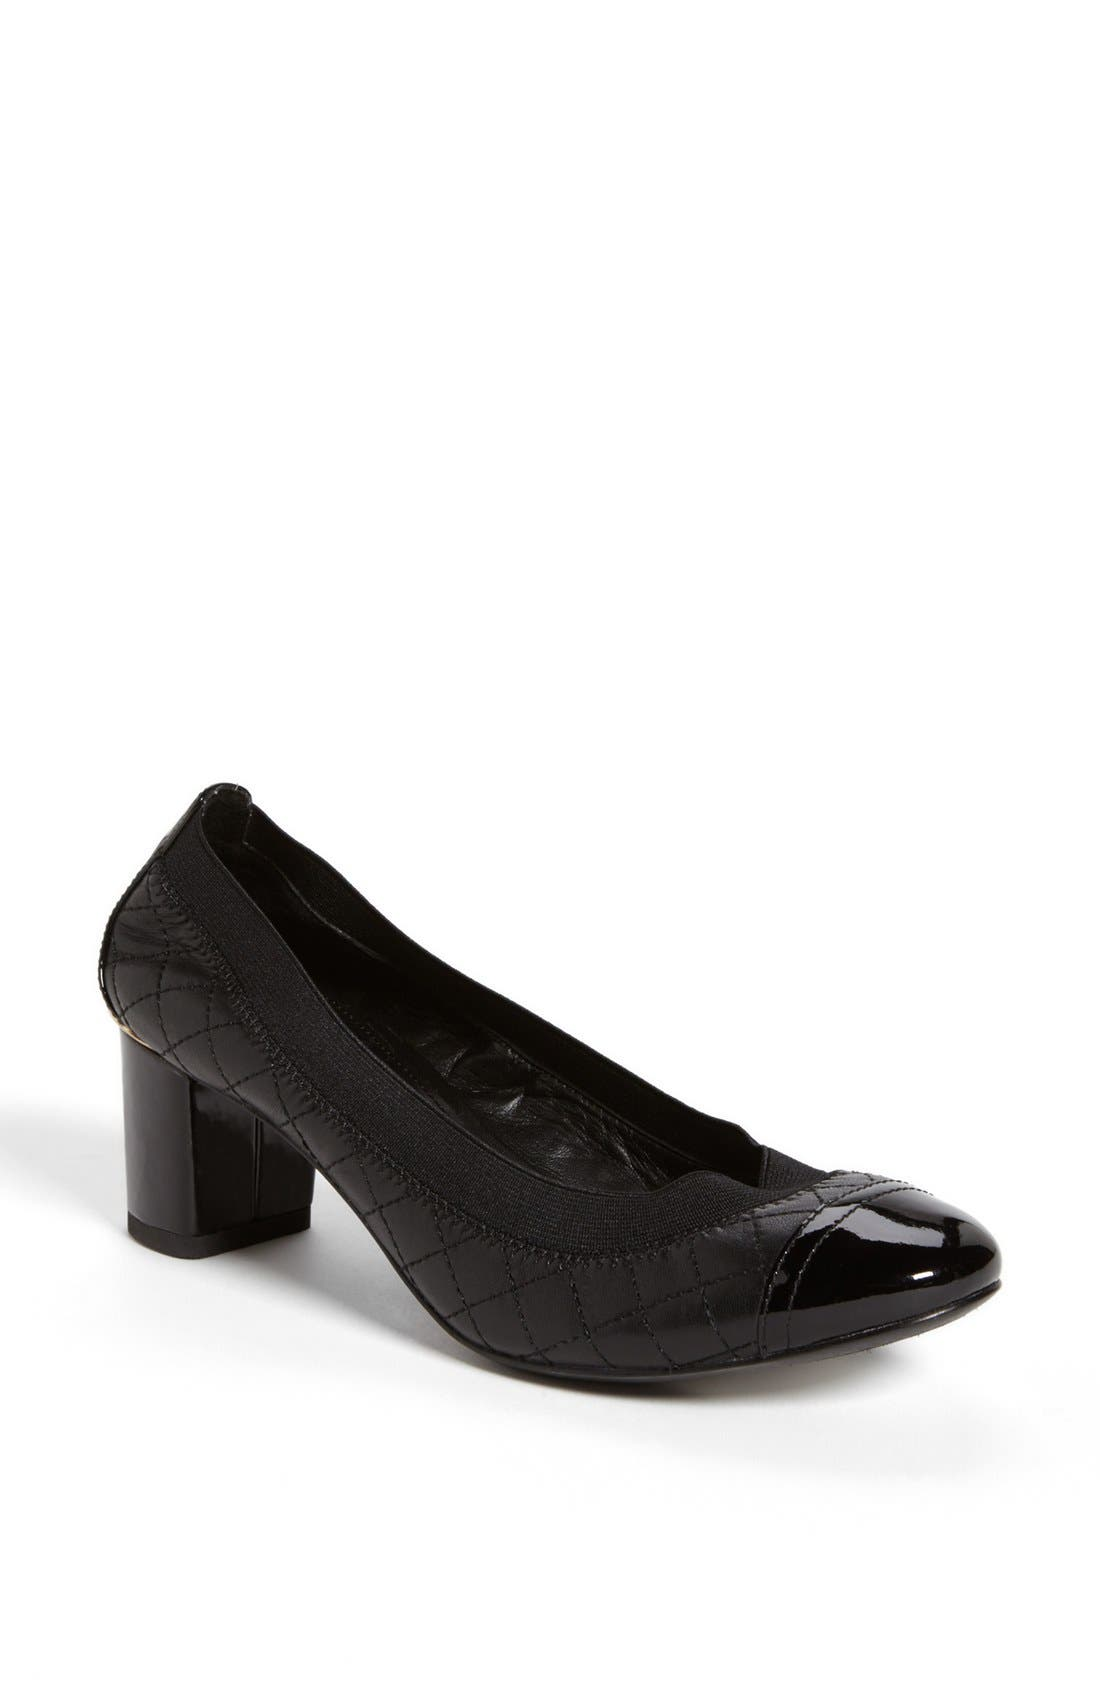 Alternate Image 1 Selected - Tory Burch 'Carrie' Quilted Leather Cap Toe Pump